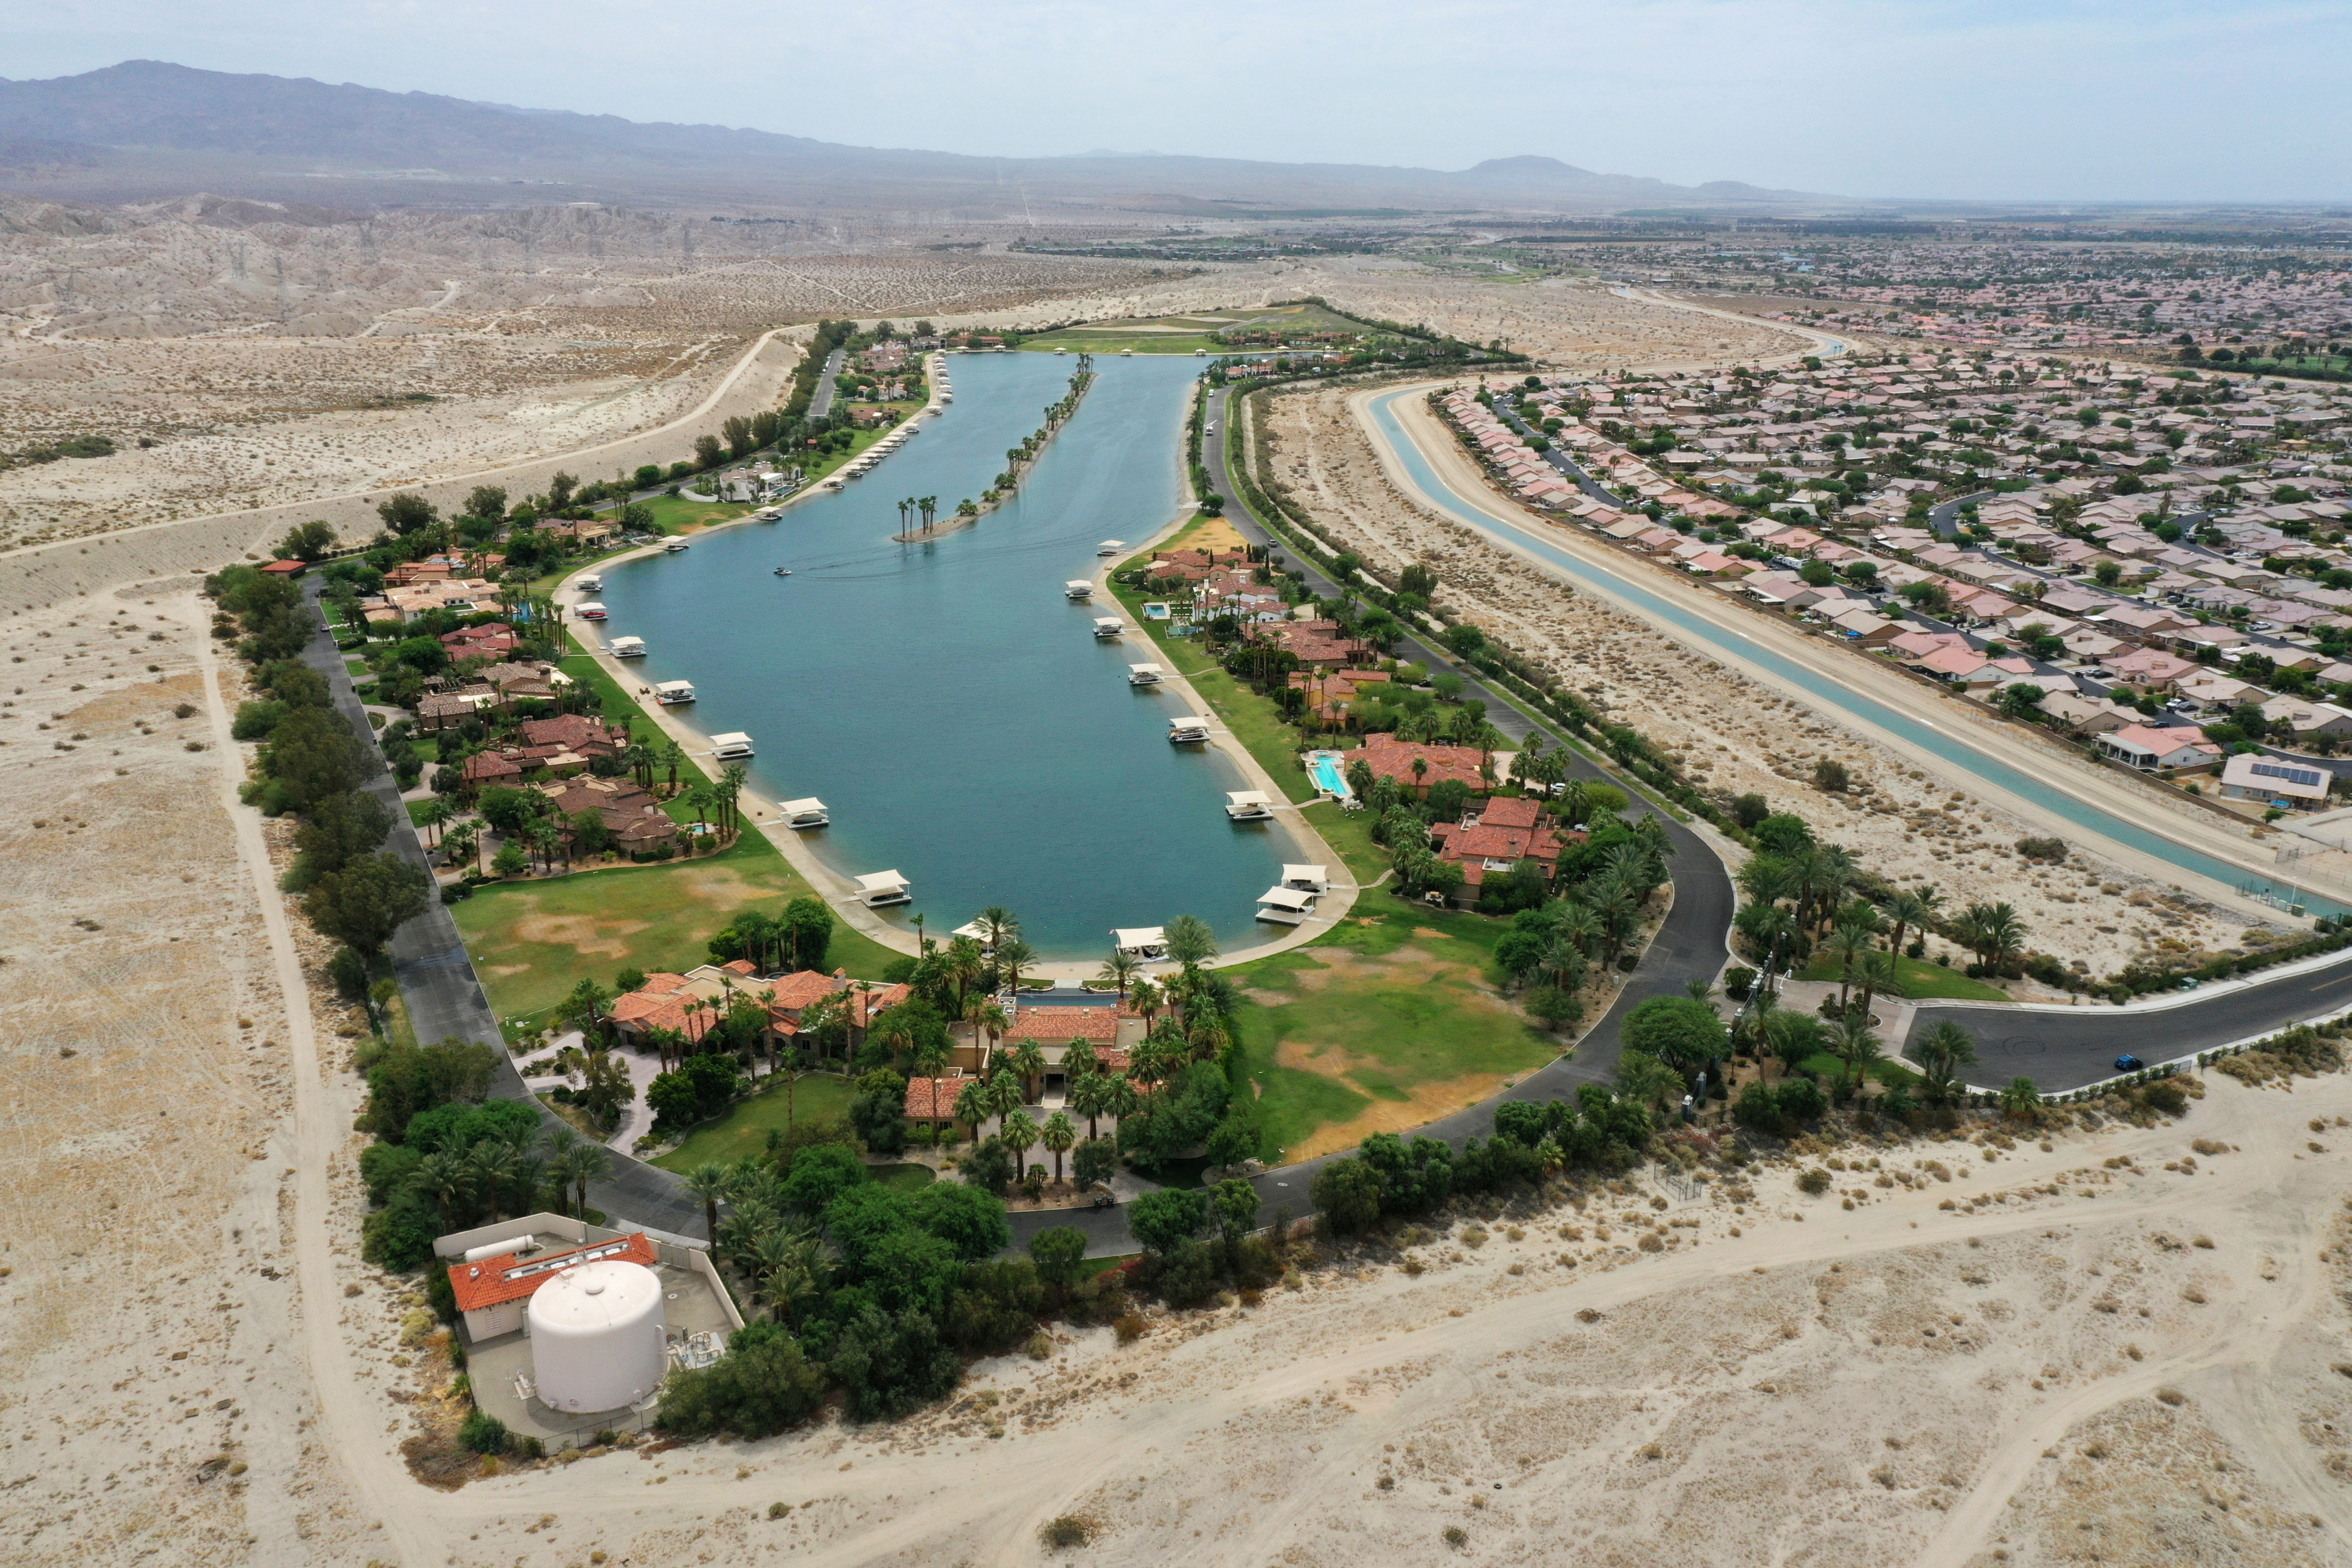 An aerial view shows the artificial lake, Shadow Lake Estates, next to desert landscape as the state faces its worst drought since 1977, in Indio, California June 29, 2021. REUTERS/Aude Guerrucci/File Photo